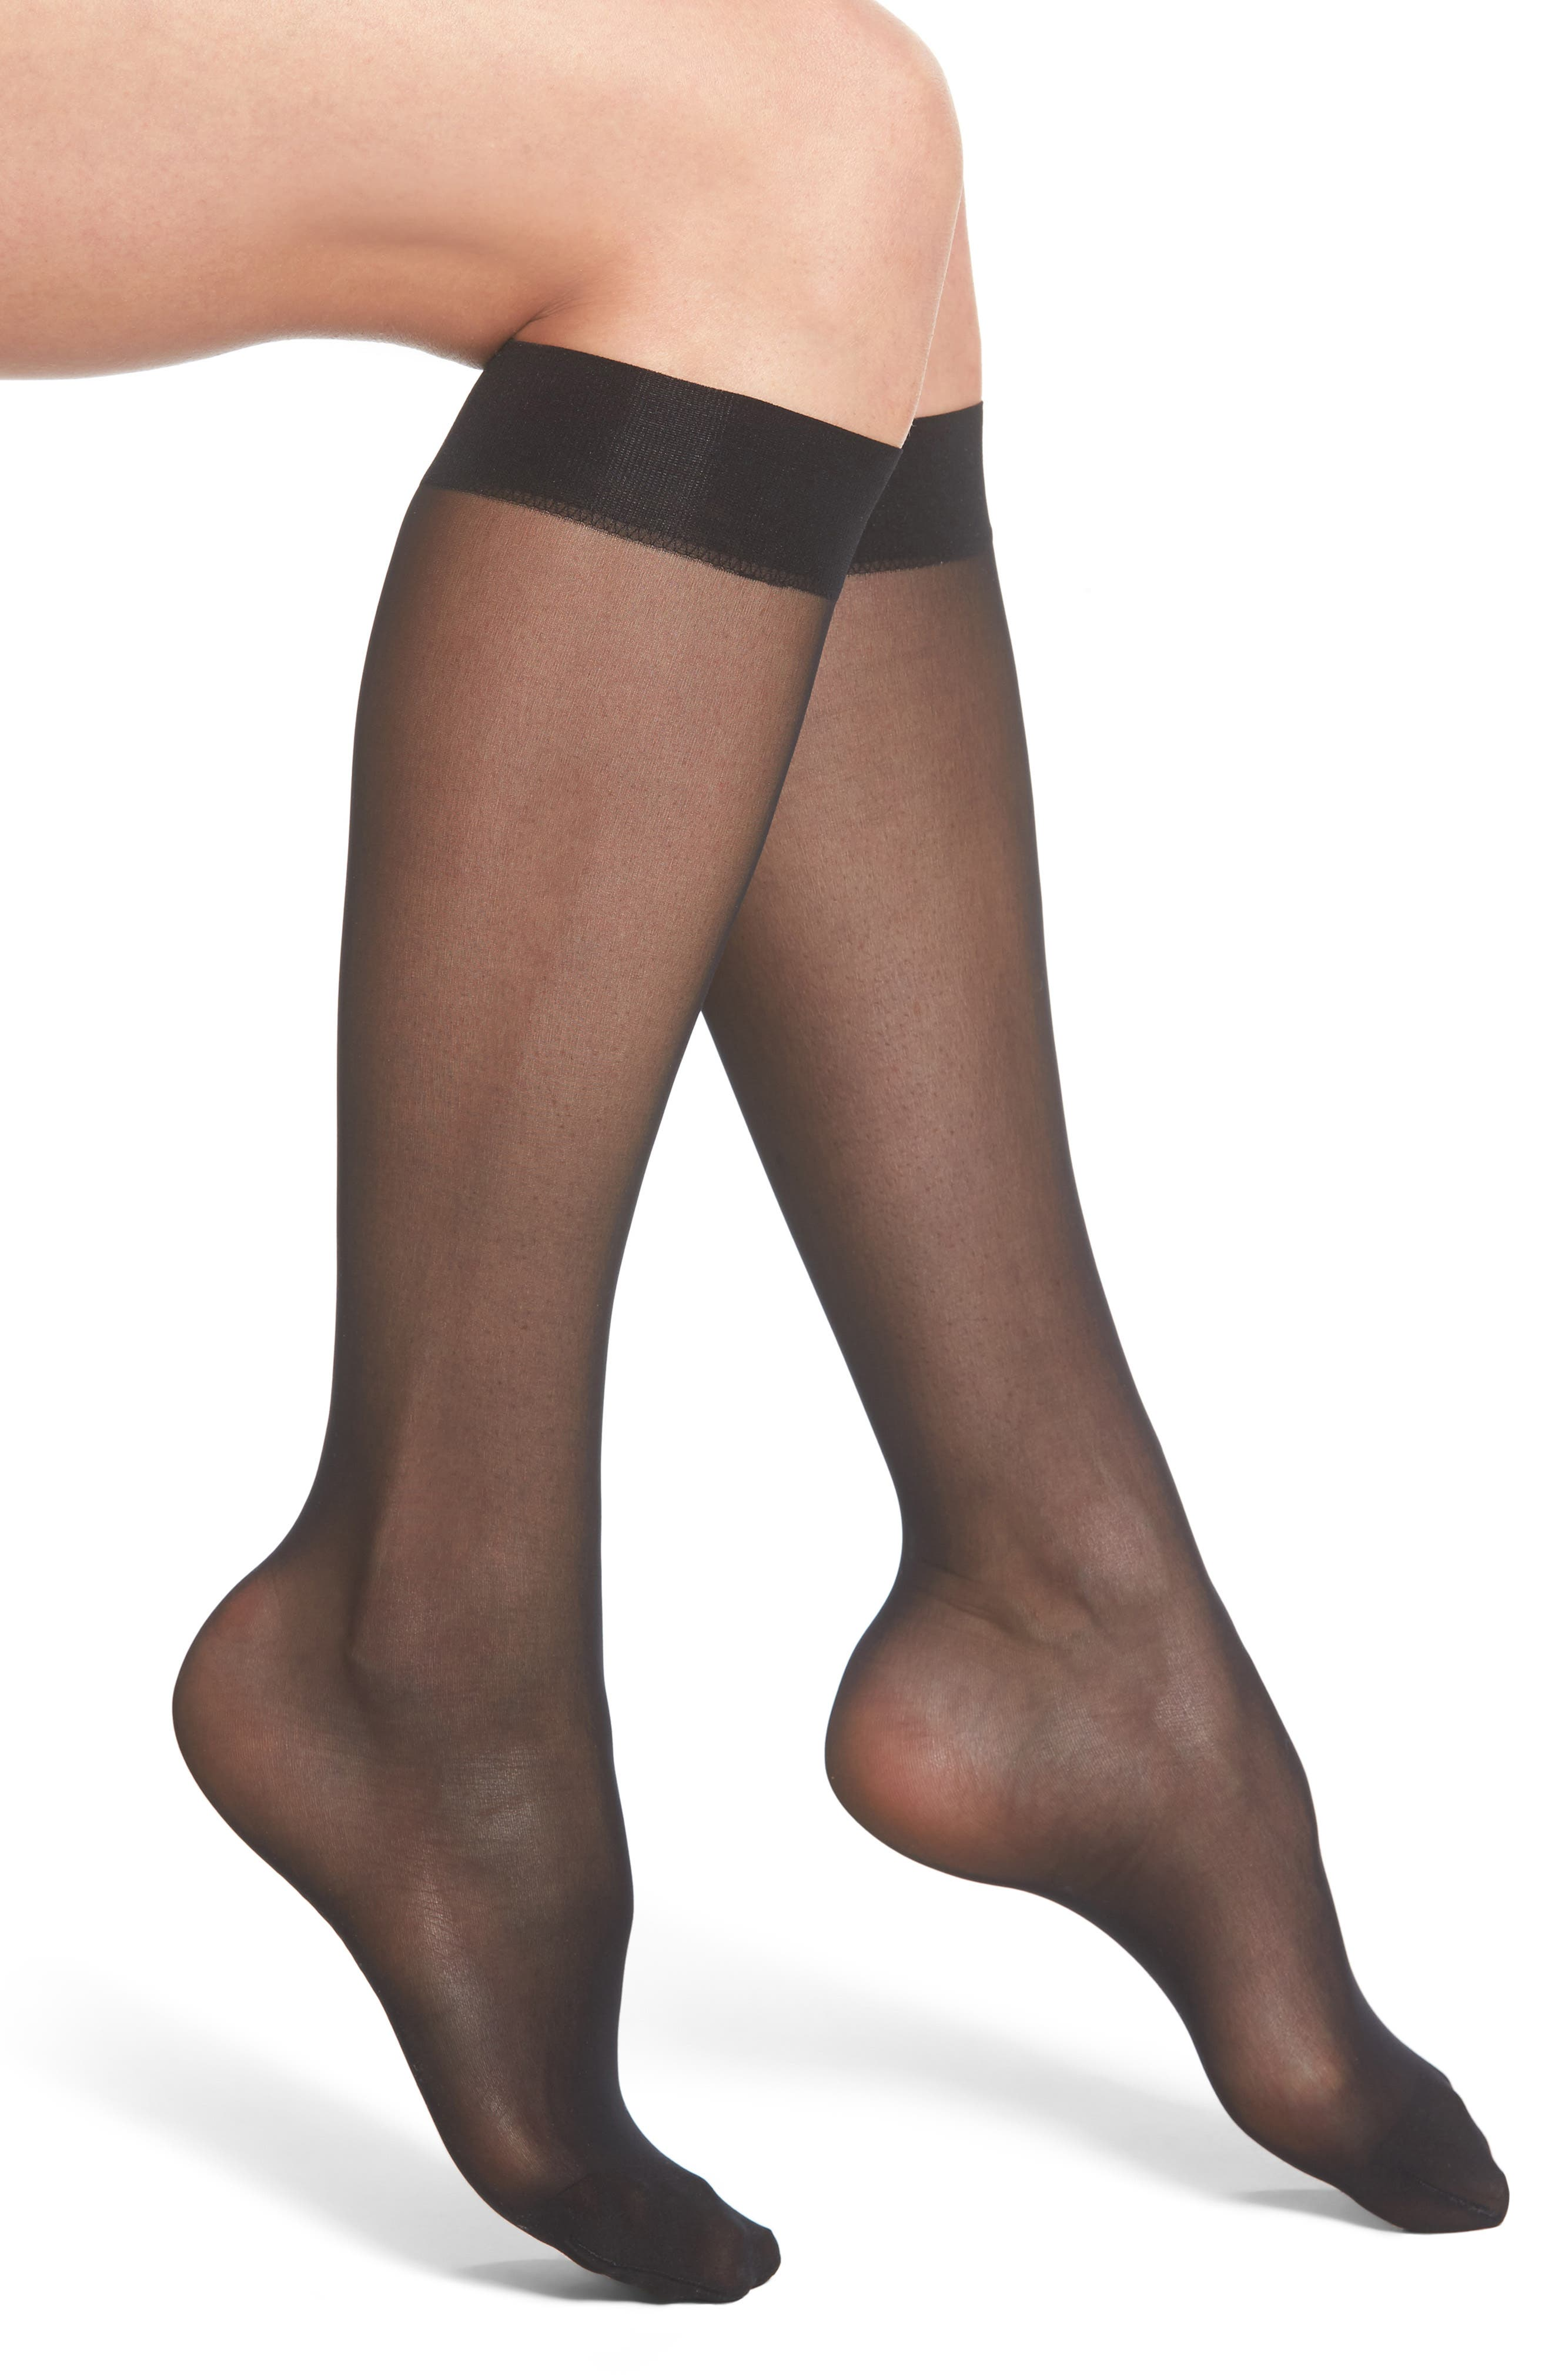 Wolford Knee High Stay-Up Stockings